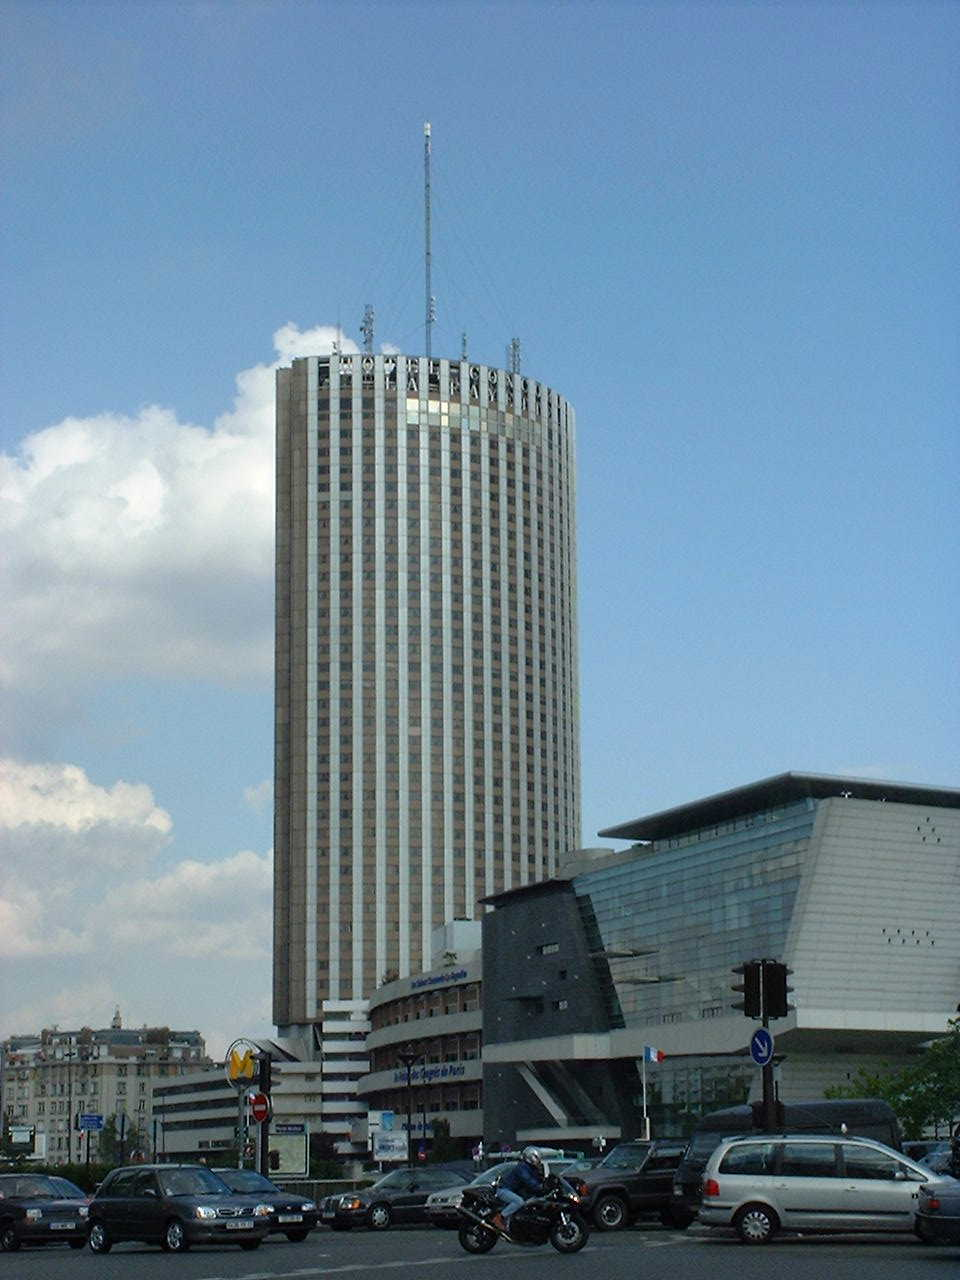 Top 20 European skylines, Poll - Page 10 - SkyscraperCity